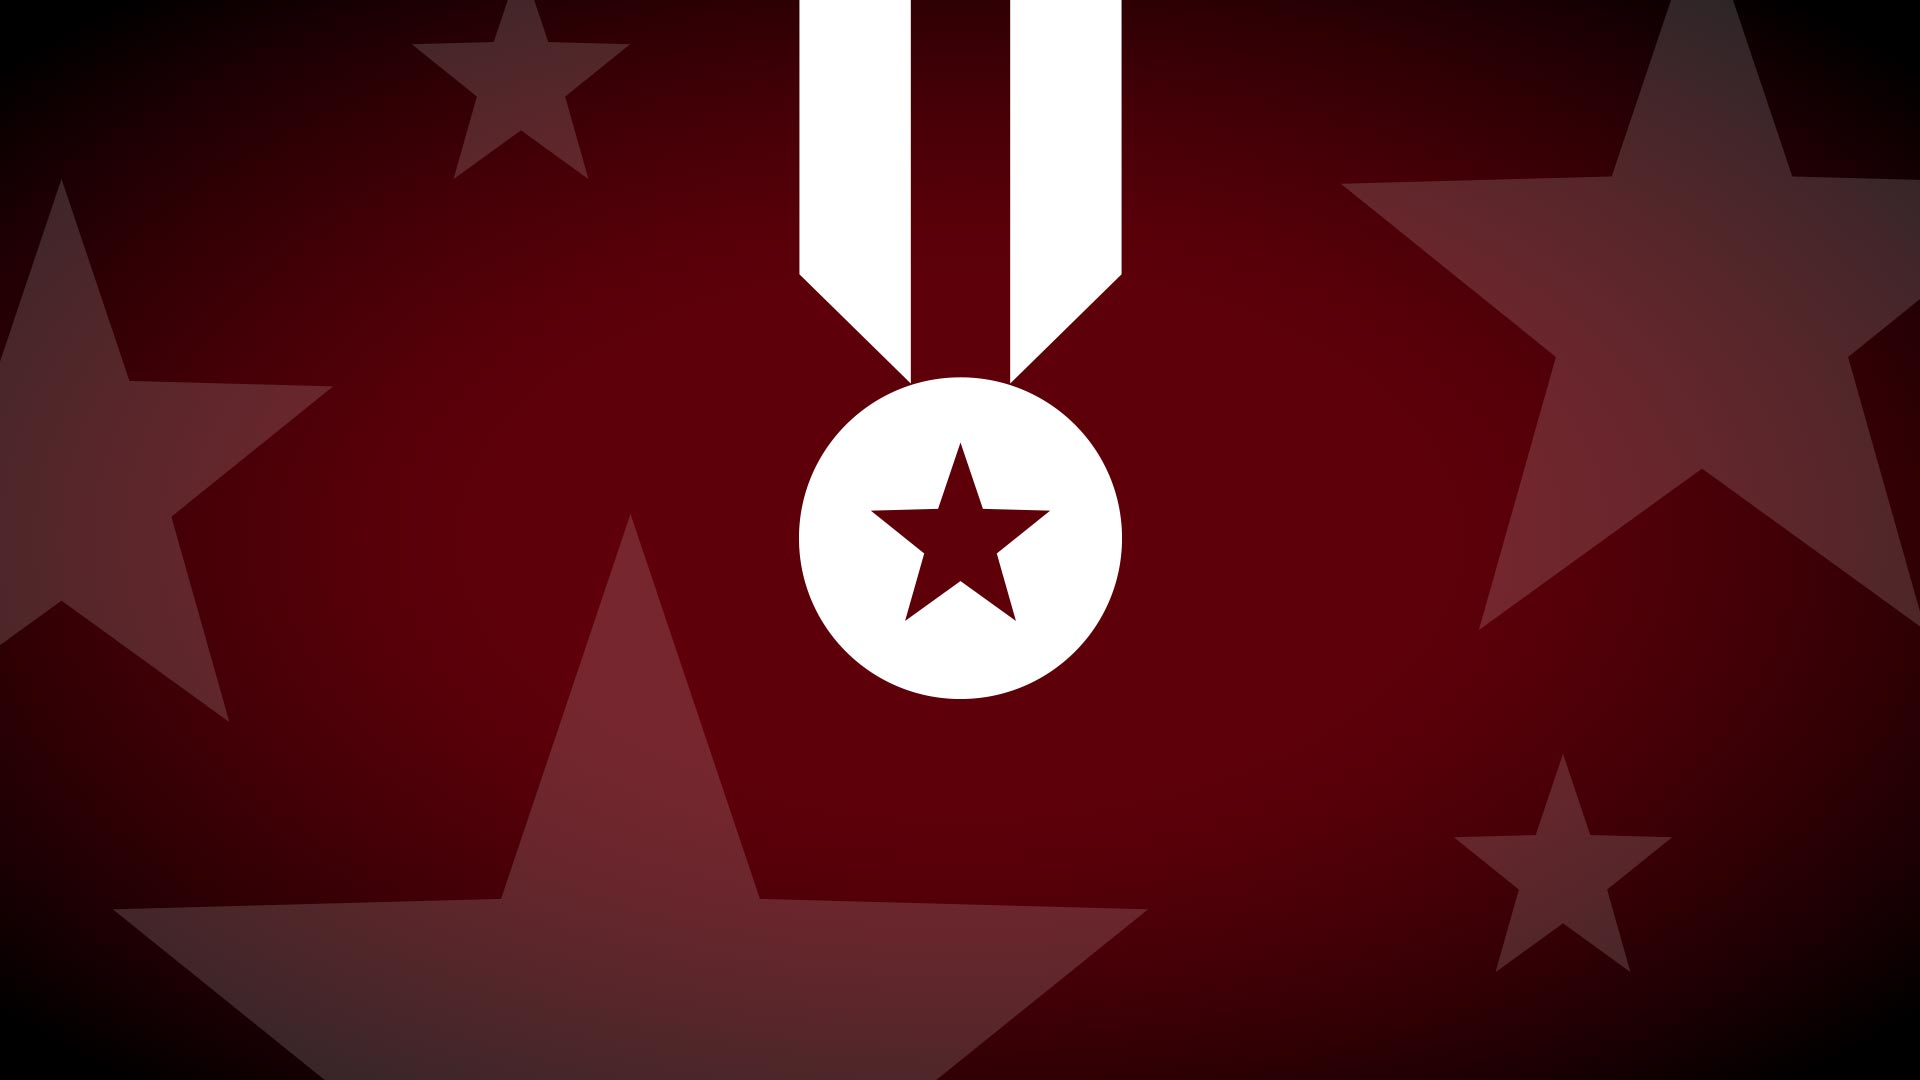 Medal illustration on a star background